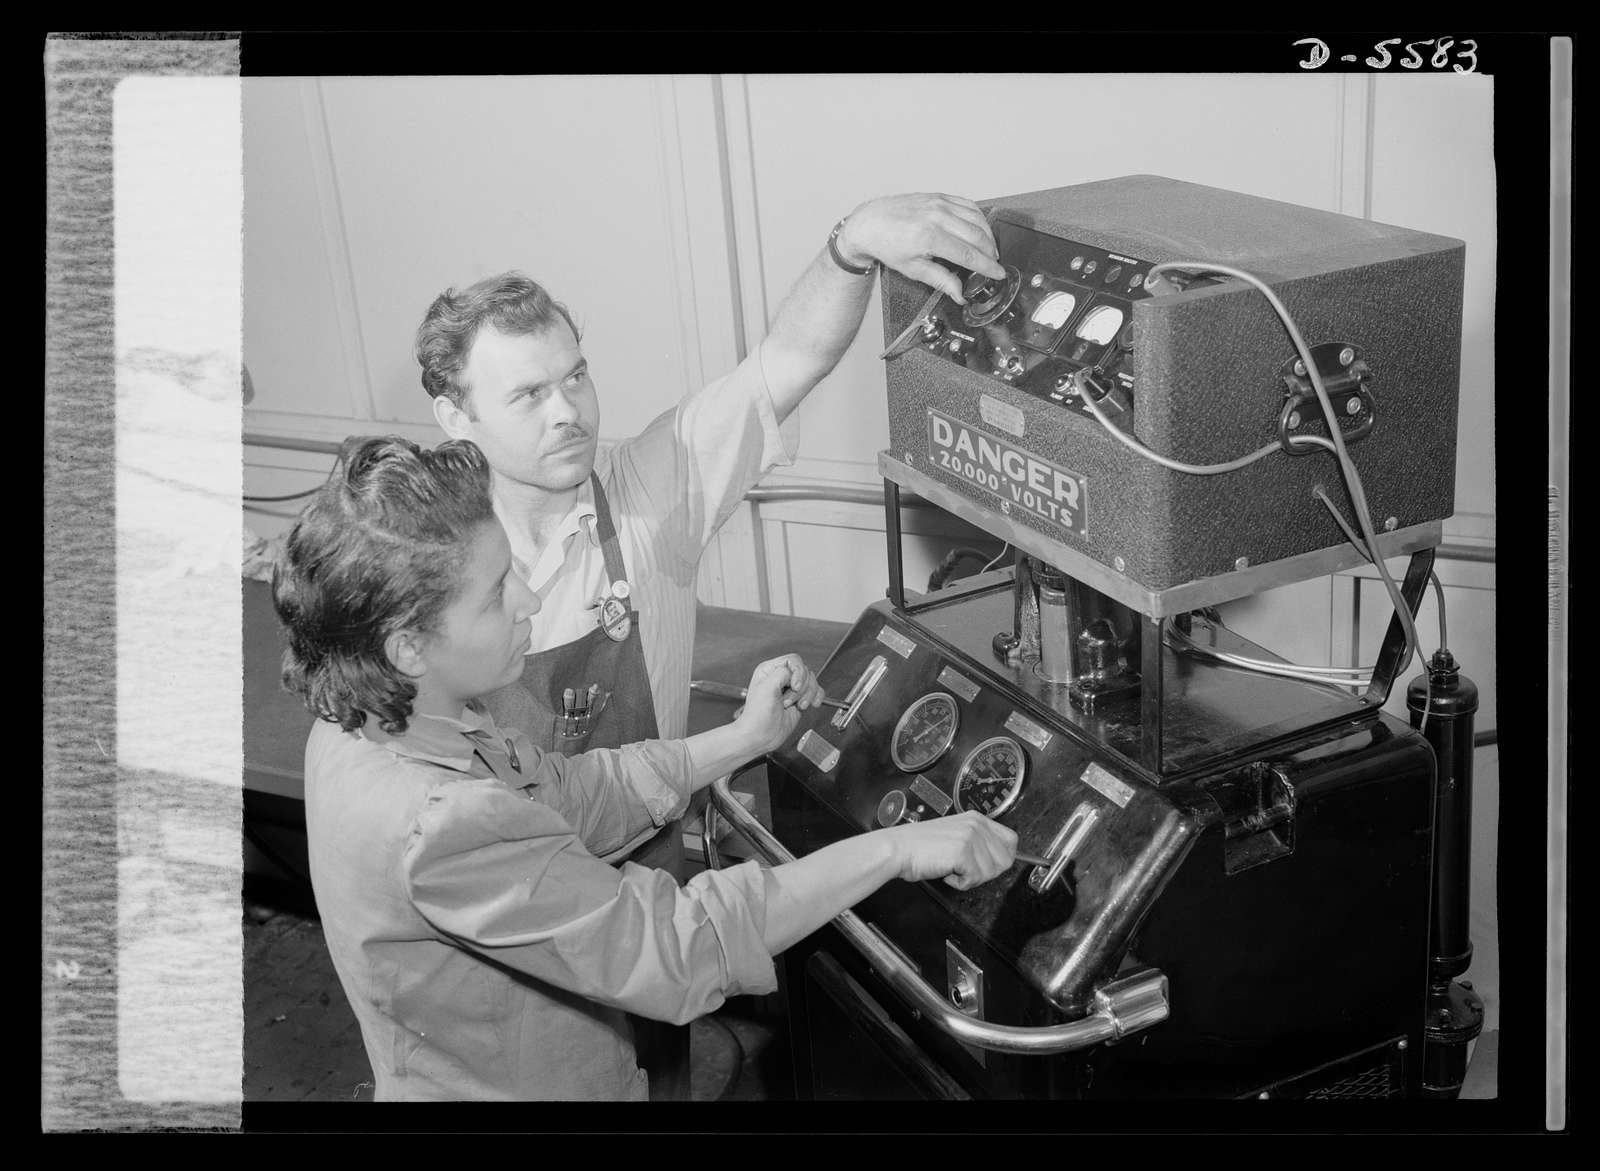 Production. Aircraft engines. Foreman F.I. Bowman shows Marietta Morgan how to operate this bomb-test machine used to test reconditioned spark plugs. A young Negro girl, Marietta, had formerly been a clerk in a meat market. Her lack of industrial experience, however, has been no handicap for her present war job in a large Midwest airplane plant. She's rapidly becoming a skilled and efficient machine operator. Melrose Park, Buick plant